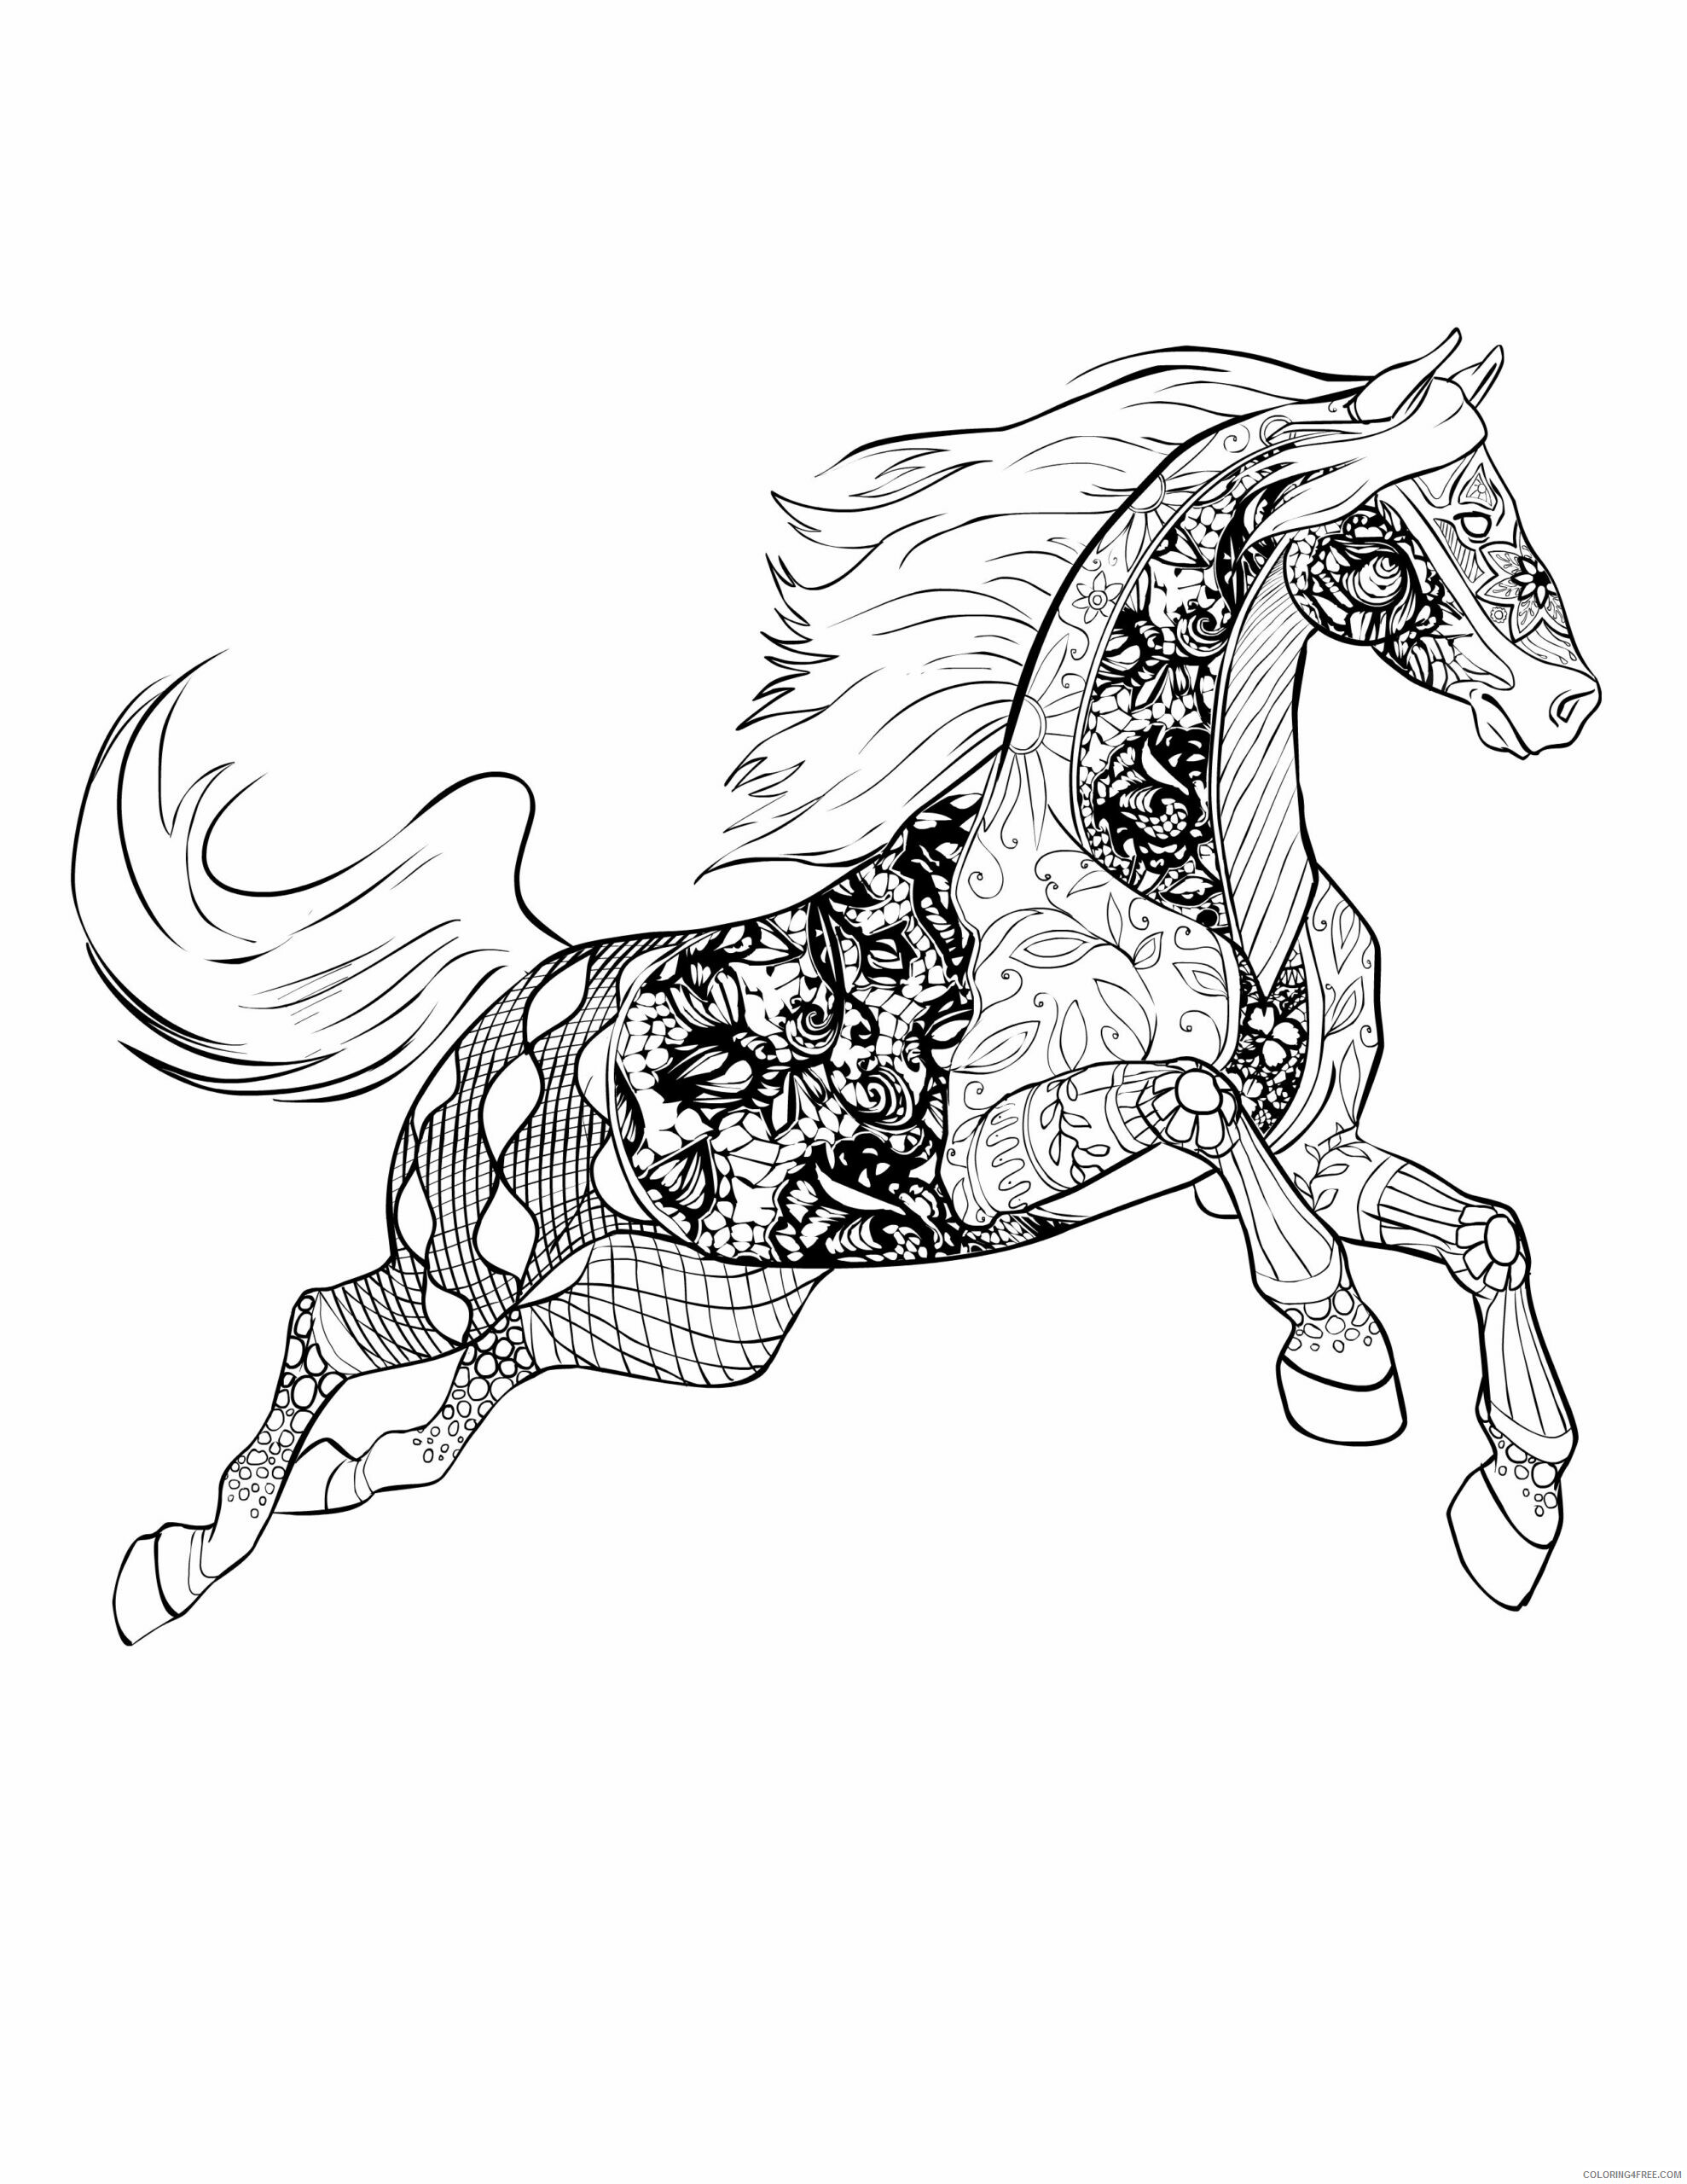 Advanced Coloring Pages Adult Advanced Horse for Adults Printable 2020 063 Coloring4free